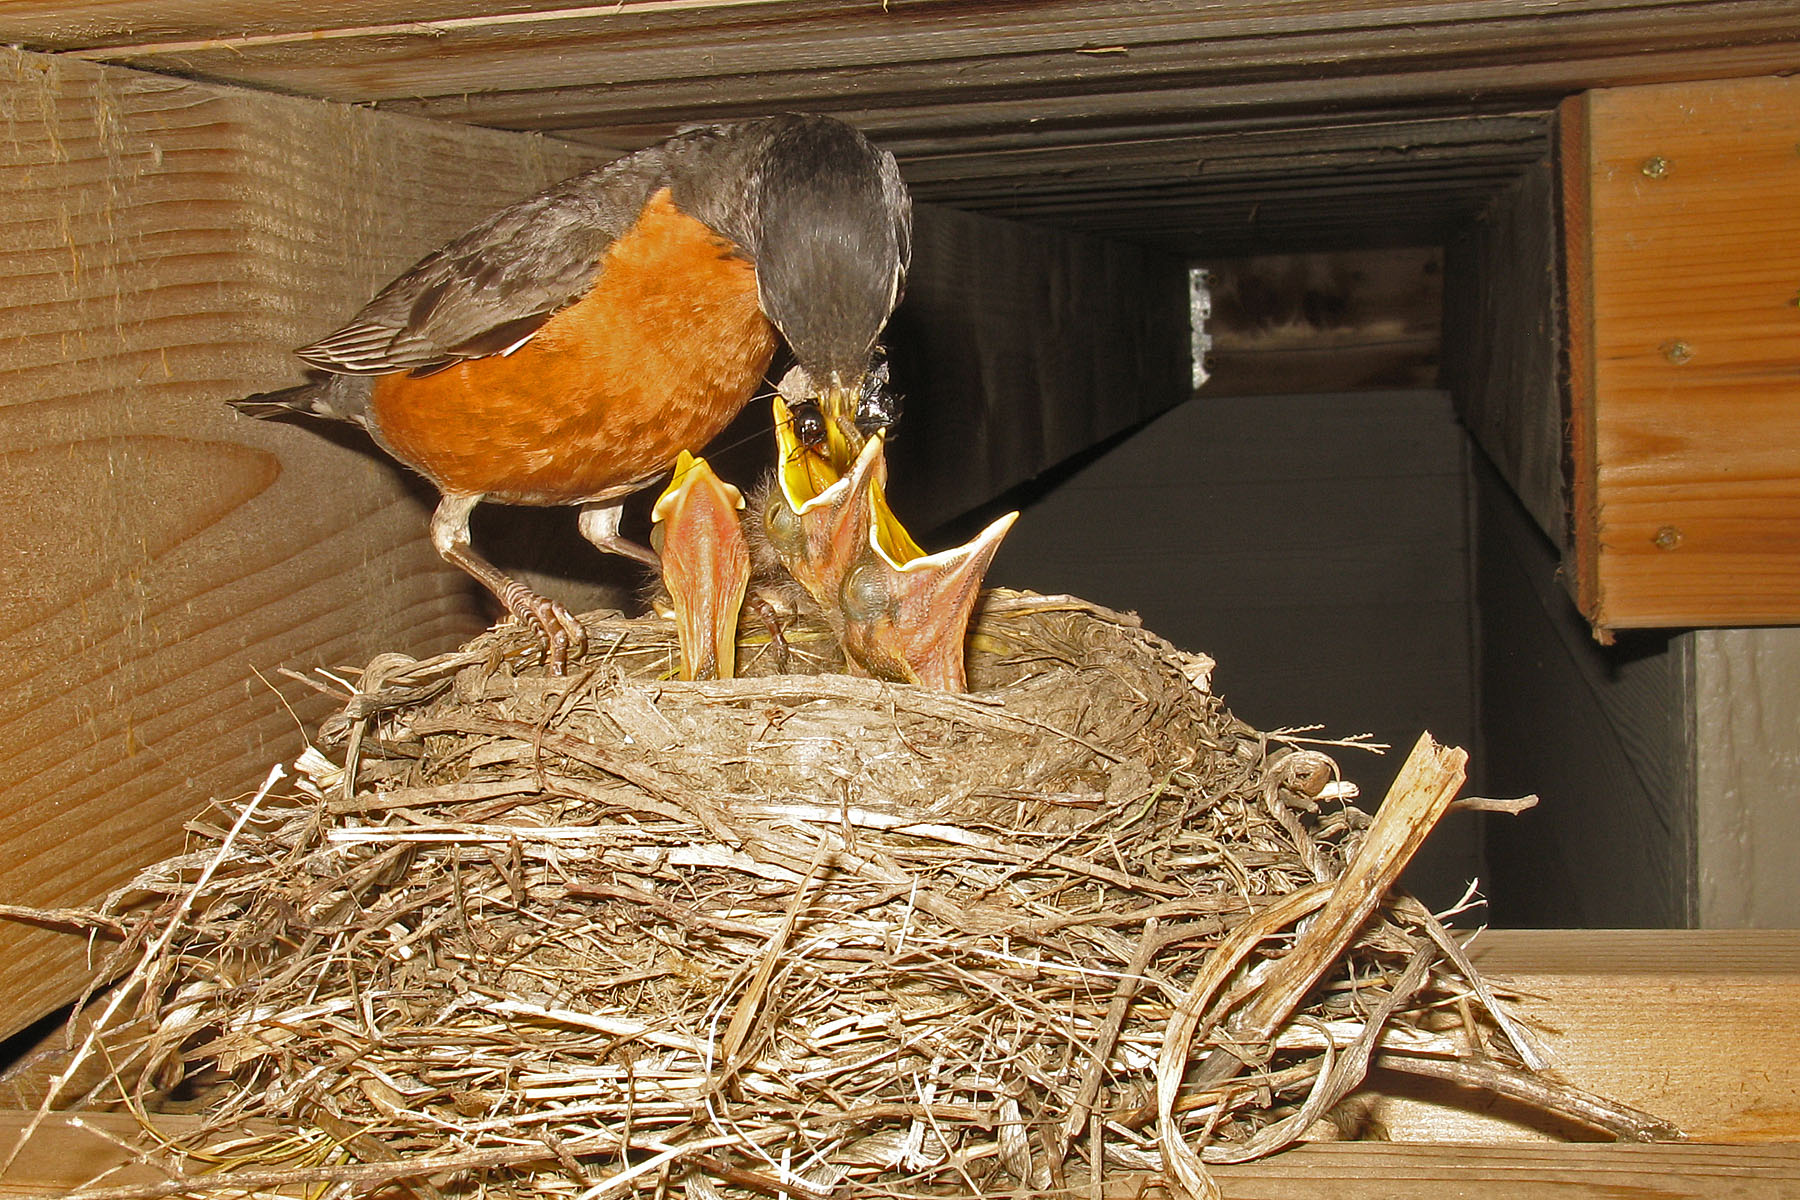 Robin nest under the deck, July 1, 2009.